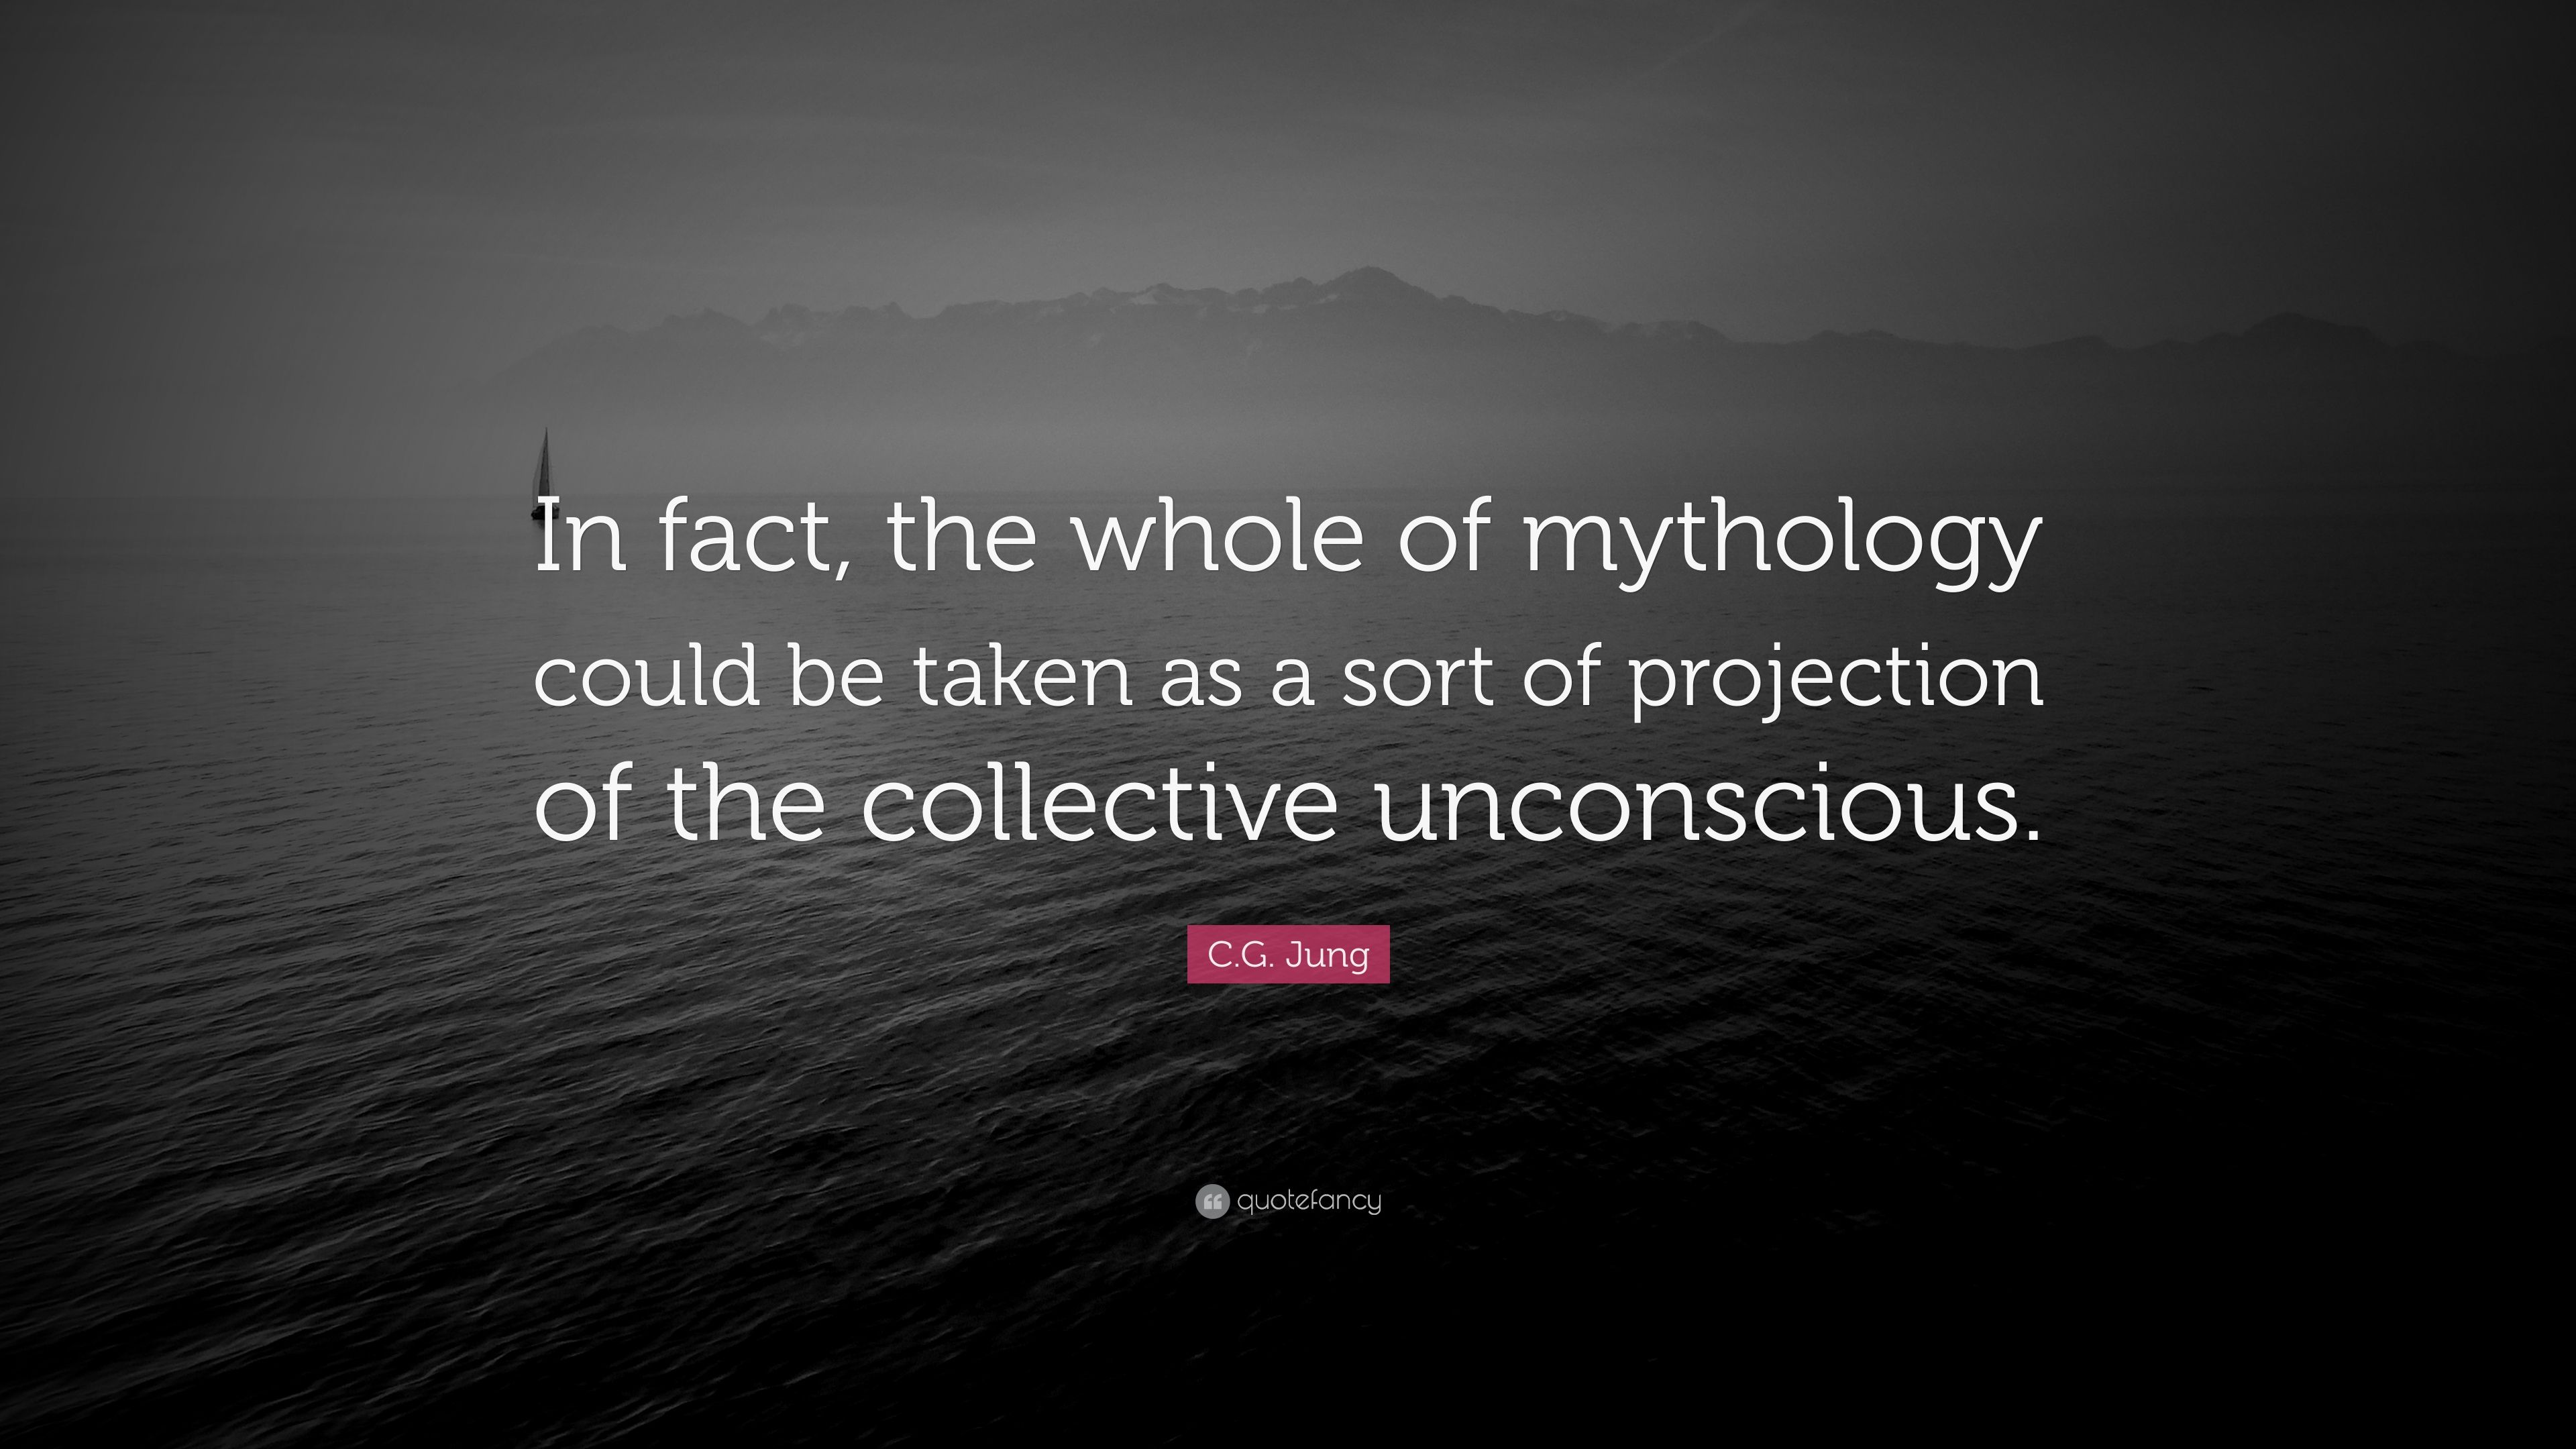 a discussion on the carl jungs conclusion of the existence of collective unconscious Free freud jung papers both freud and jung believe in the existence of a conscious and unconscious mind freud, dream analysis, collective unconscious, ] 578.